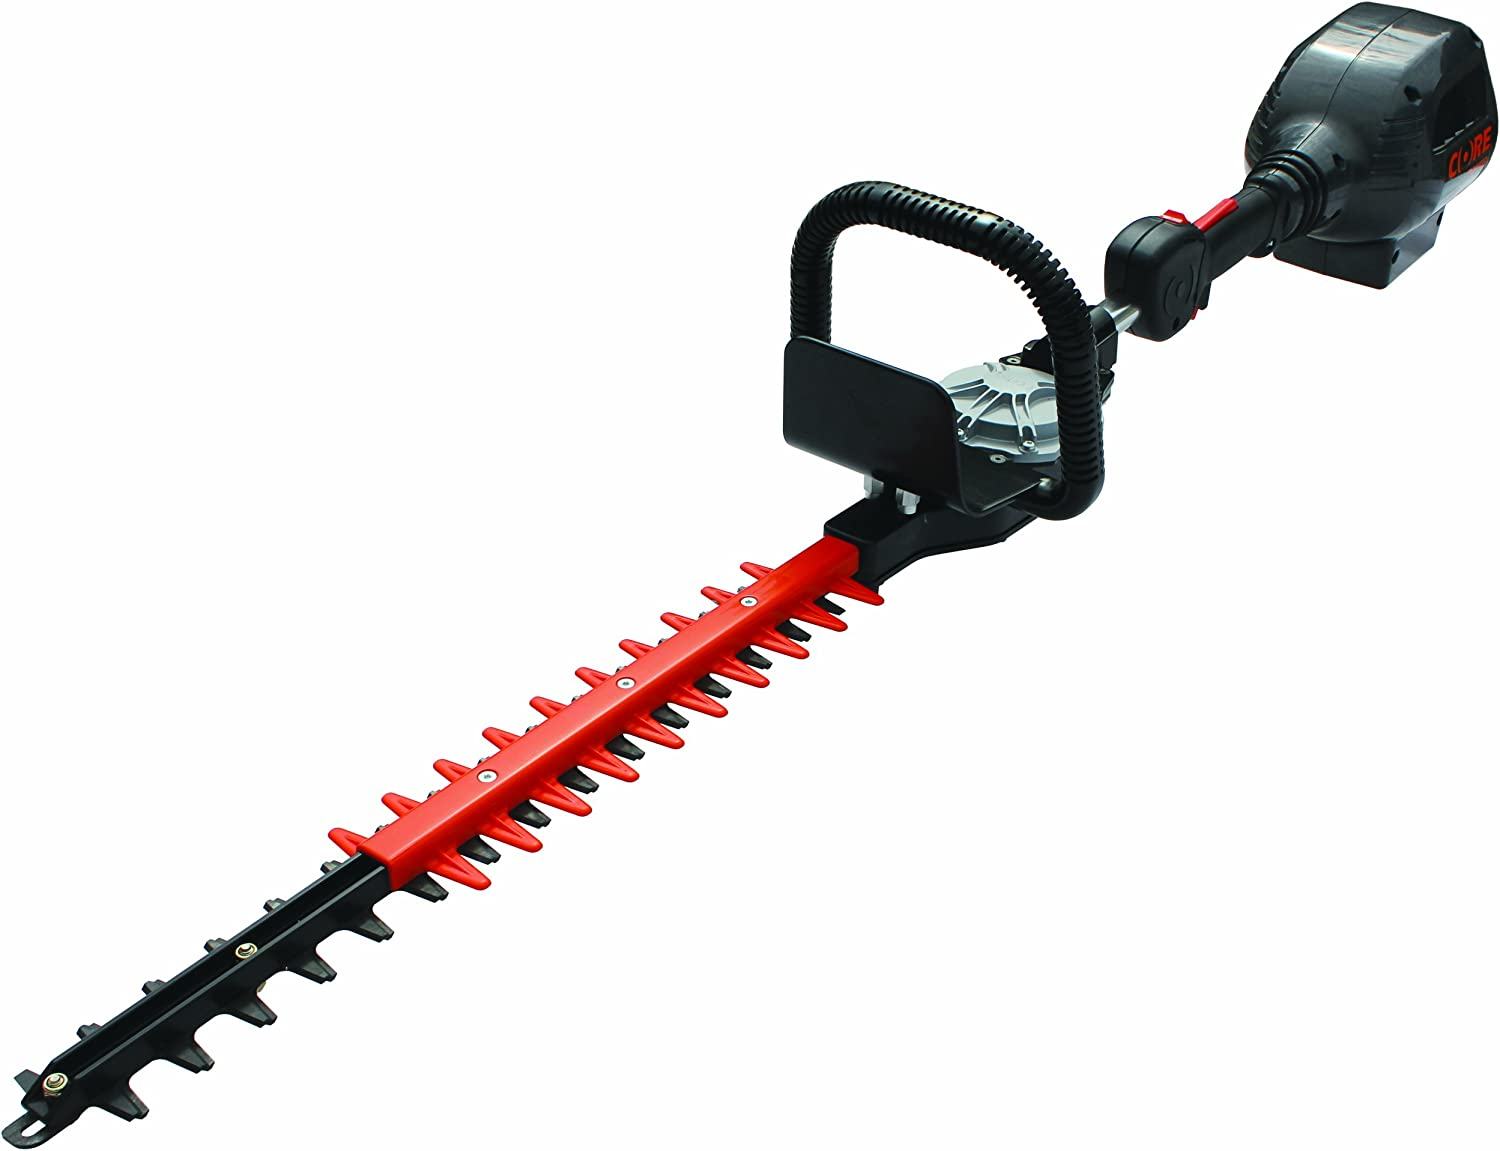 Core GasLess Power CHT410 Gasless Powered Hedge Trimmer